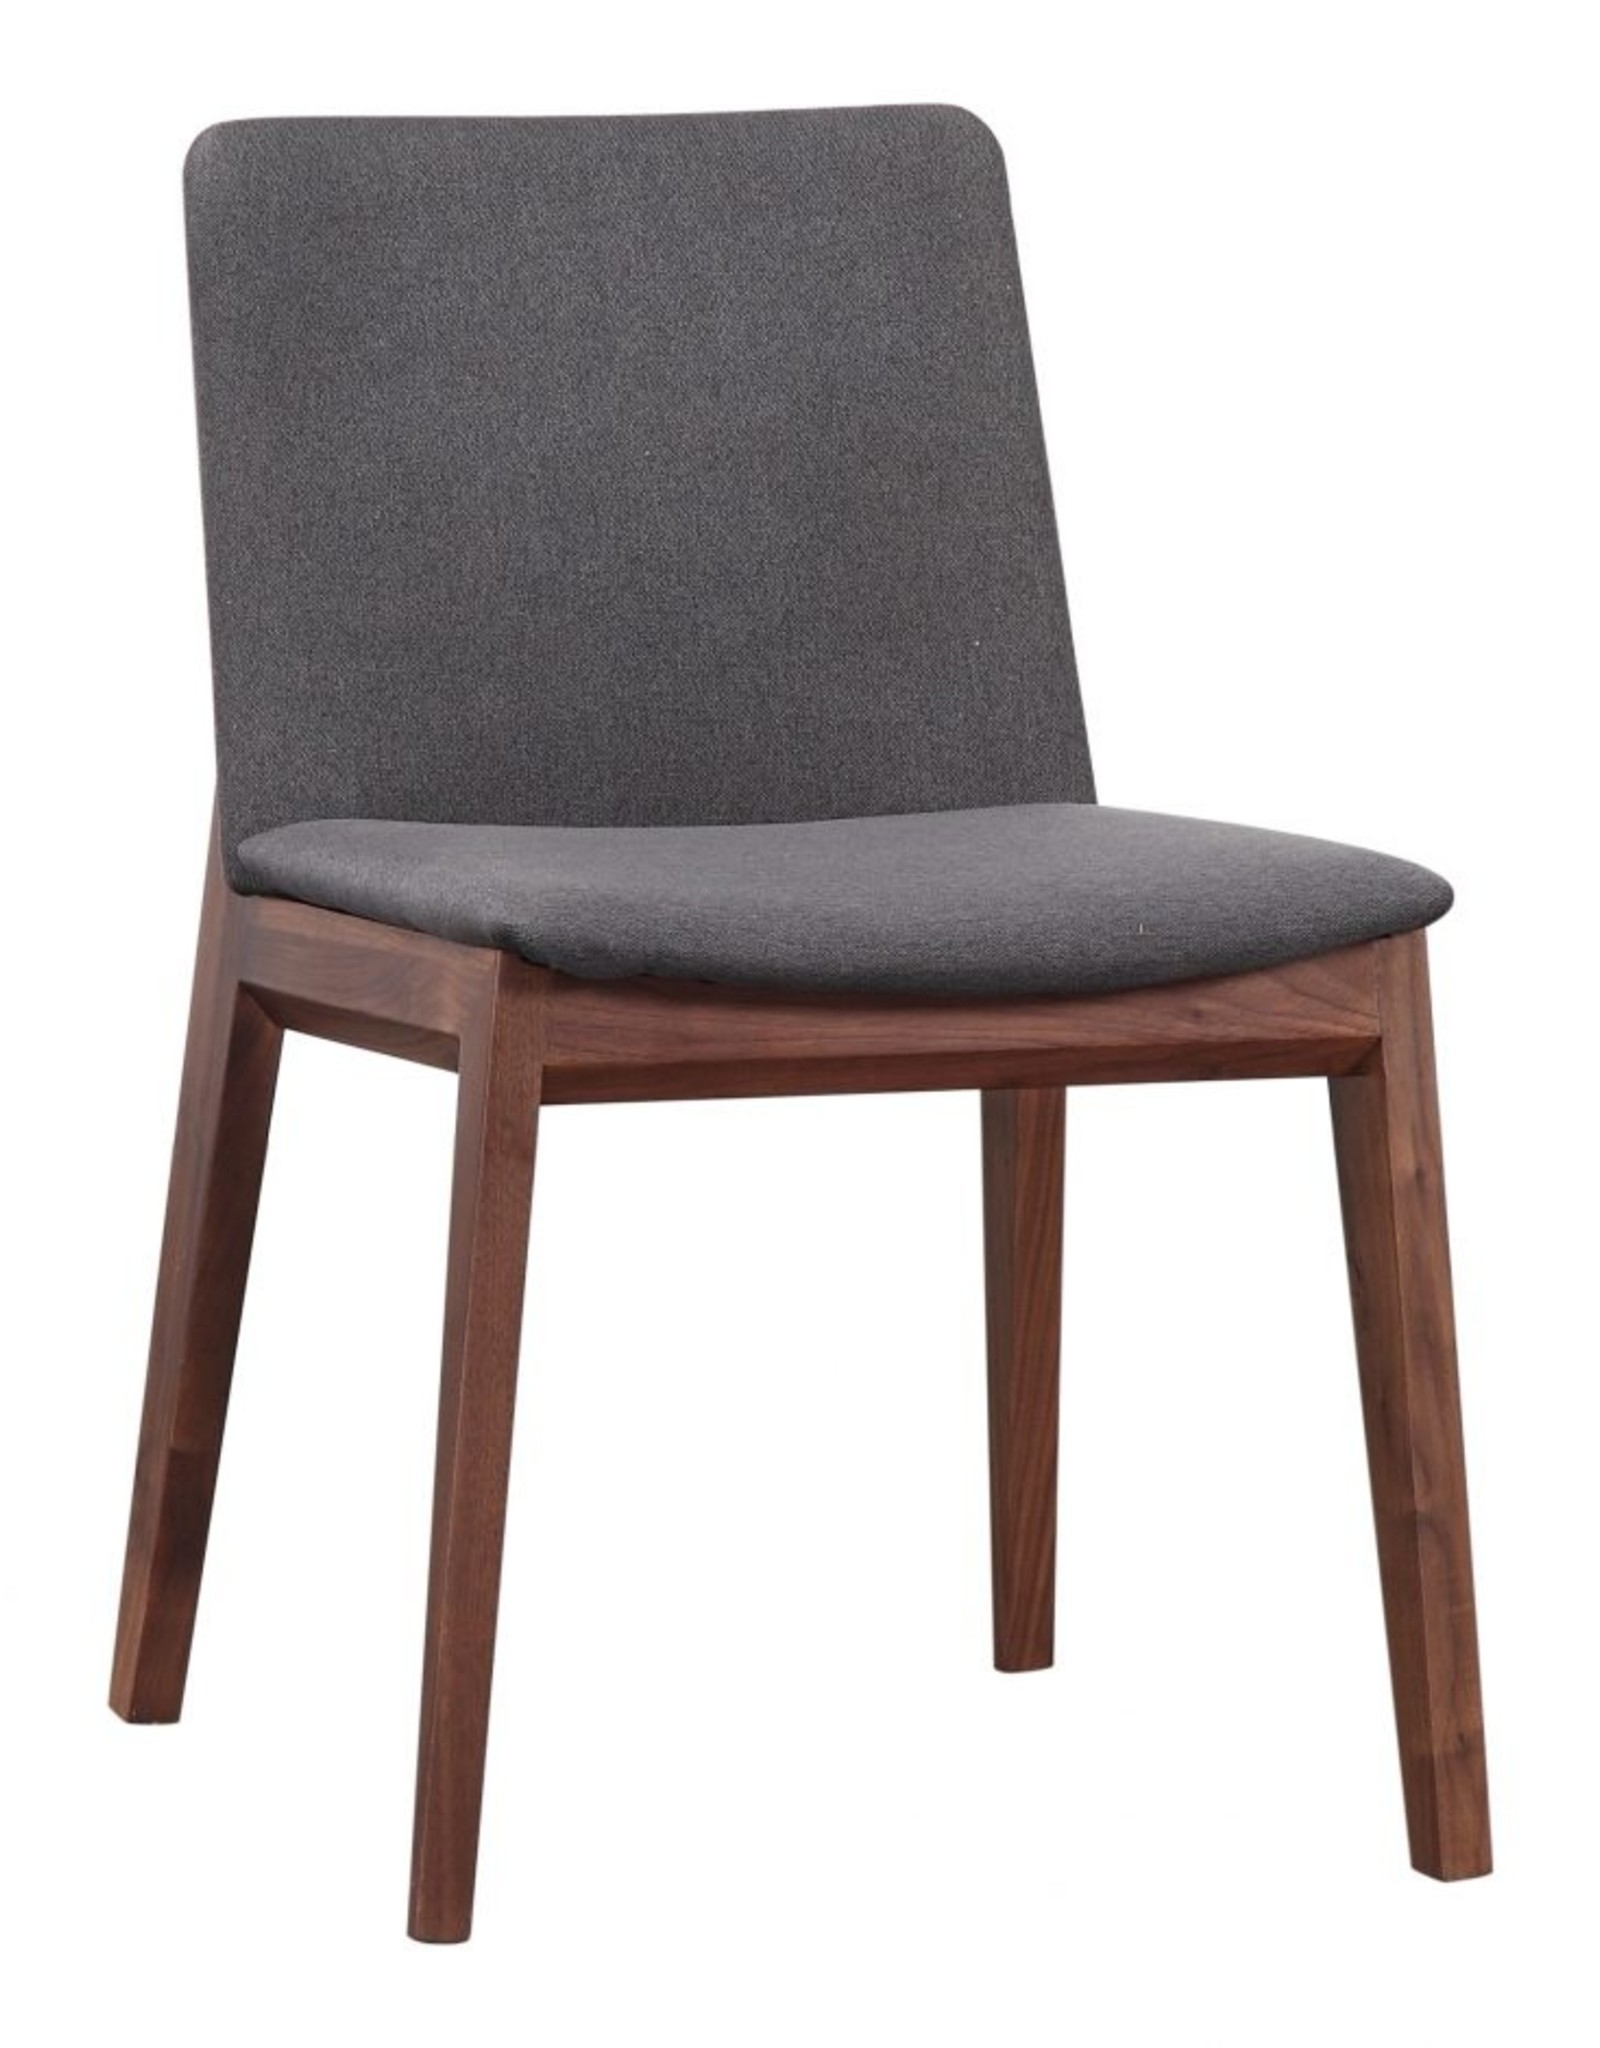 Moes Home Collection Moes Deco Chair Grey Fabric BC-1016-25